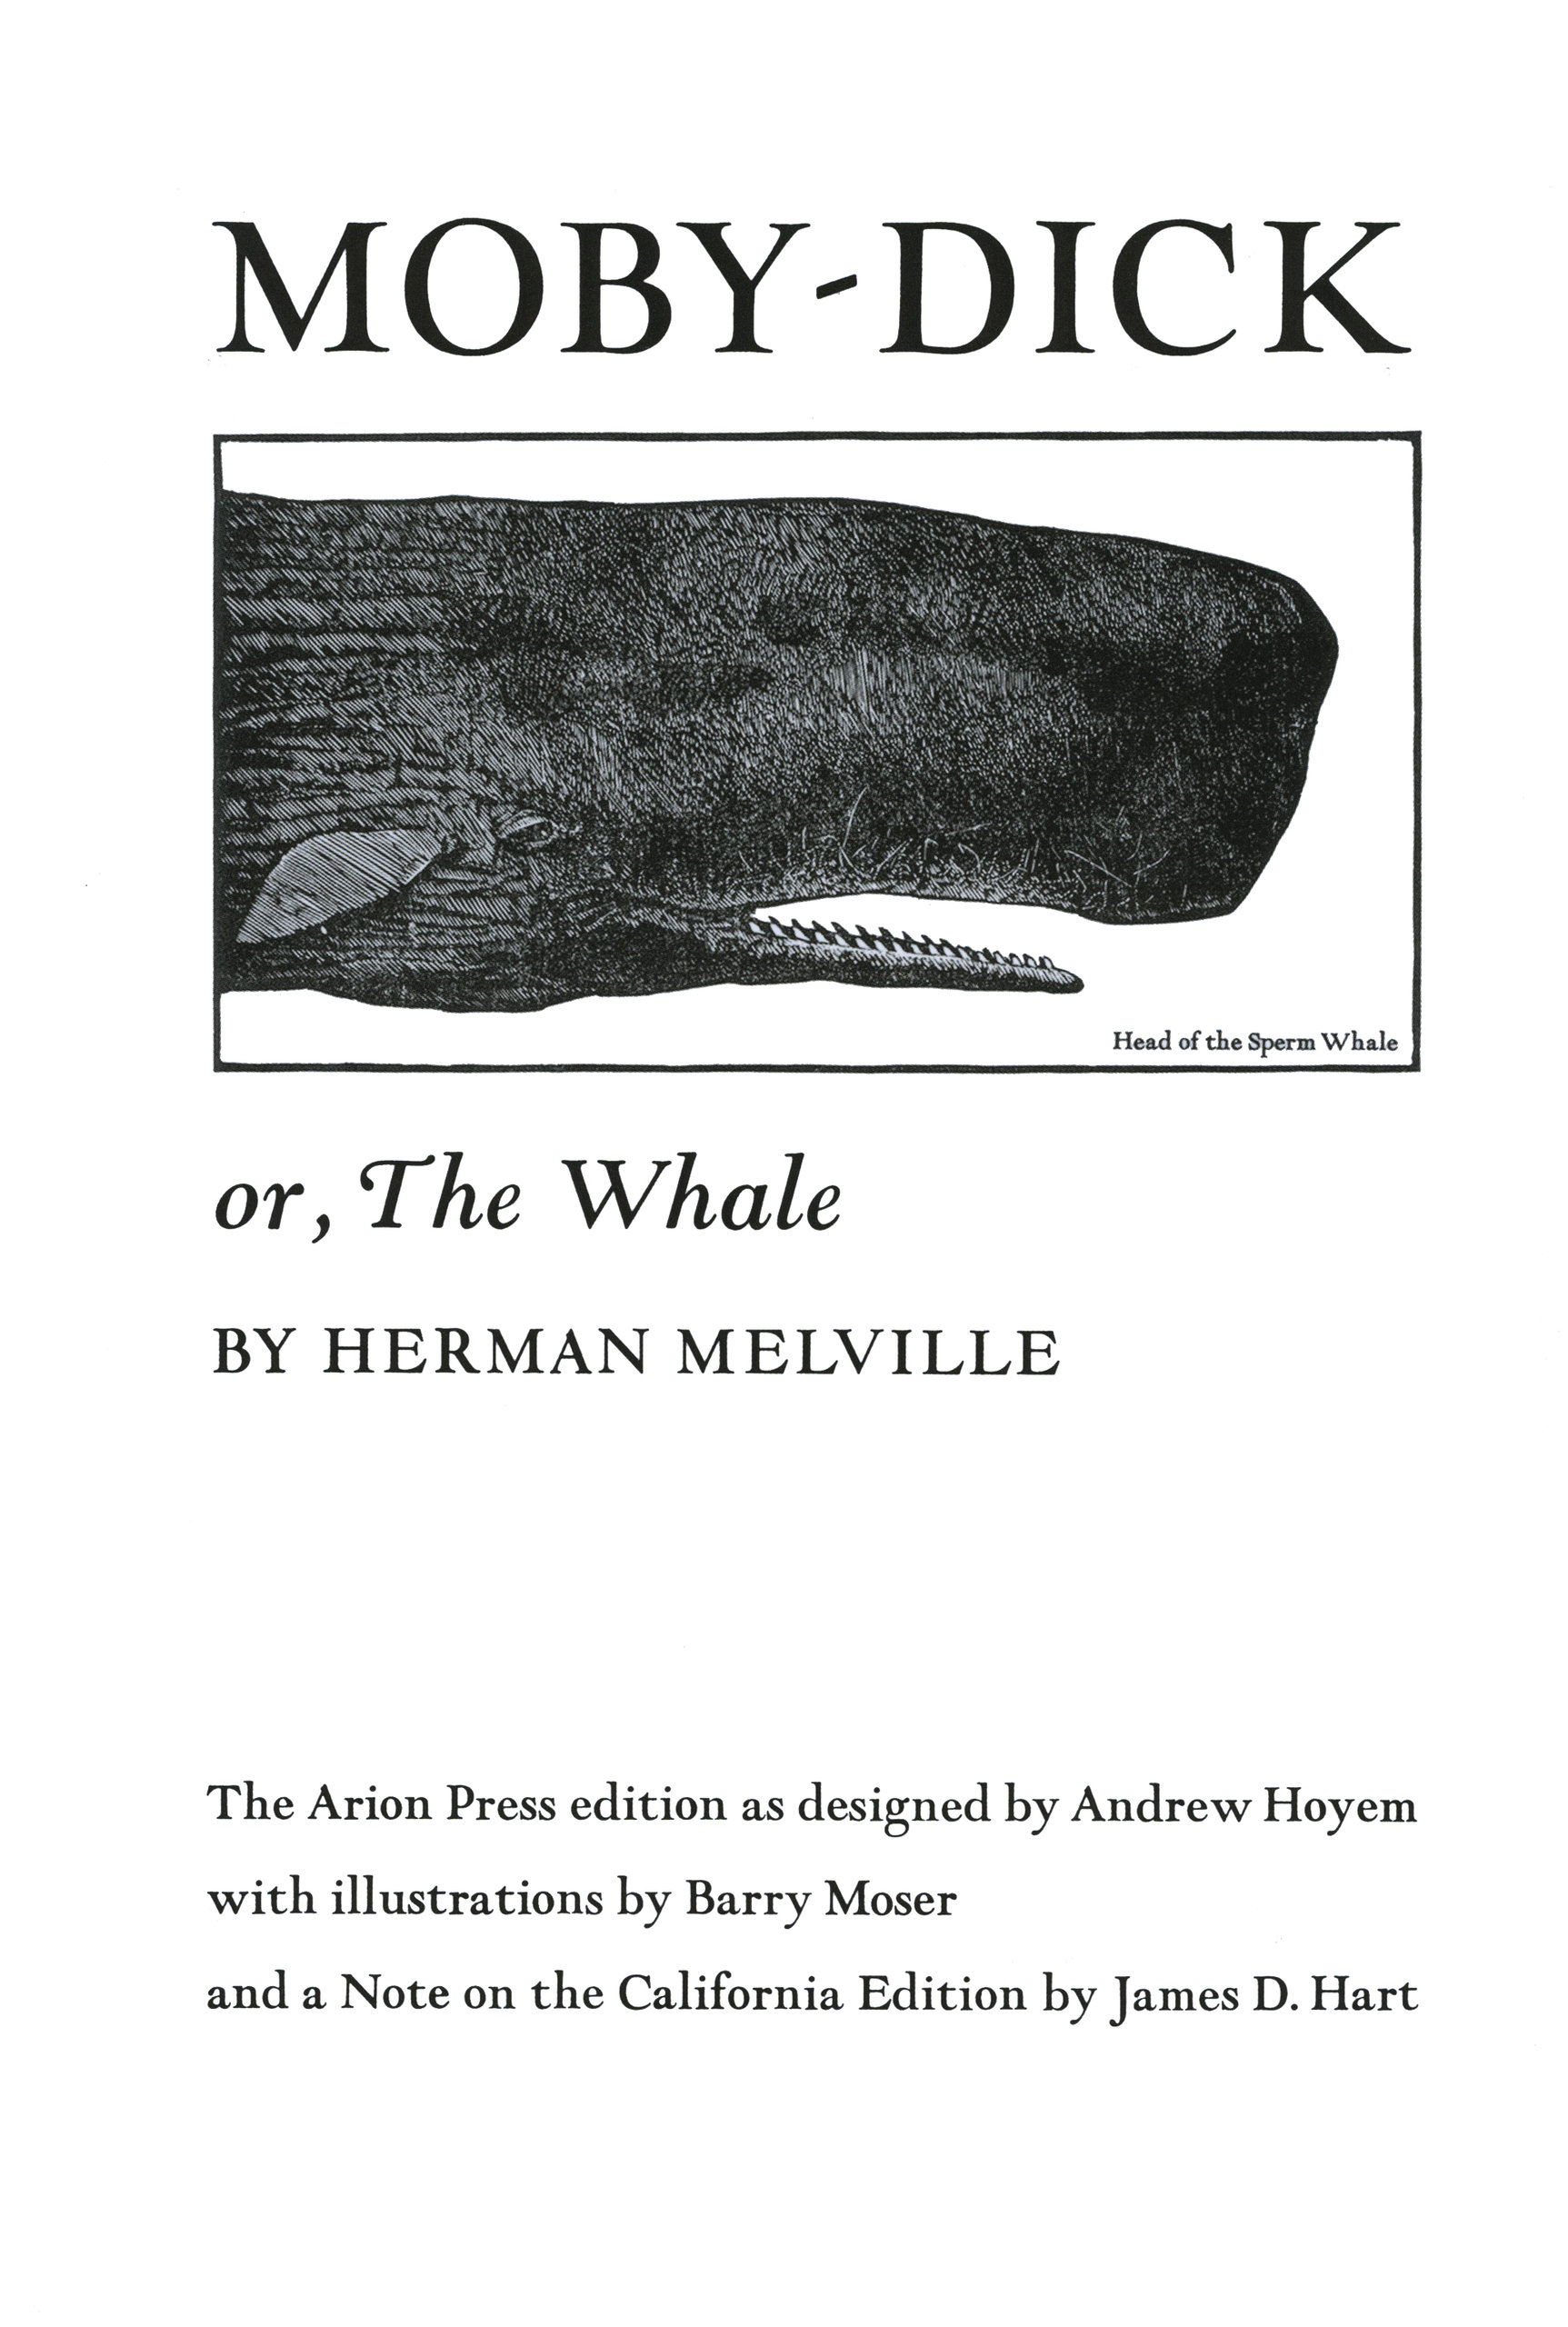 Help with Moby Dick essay?